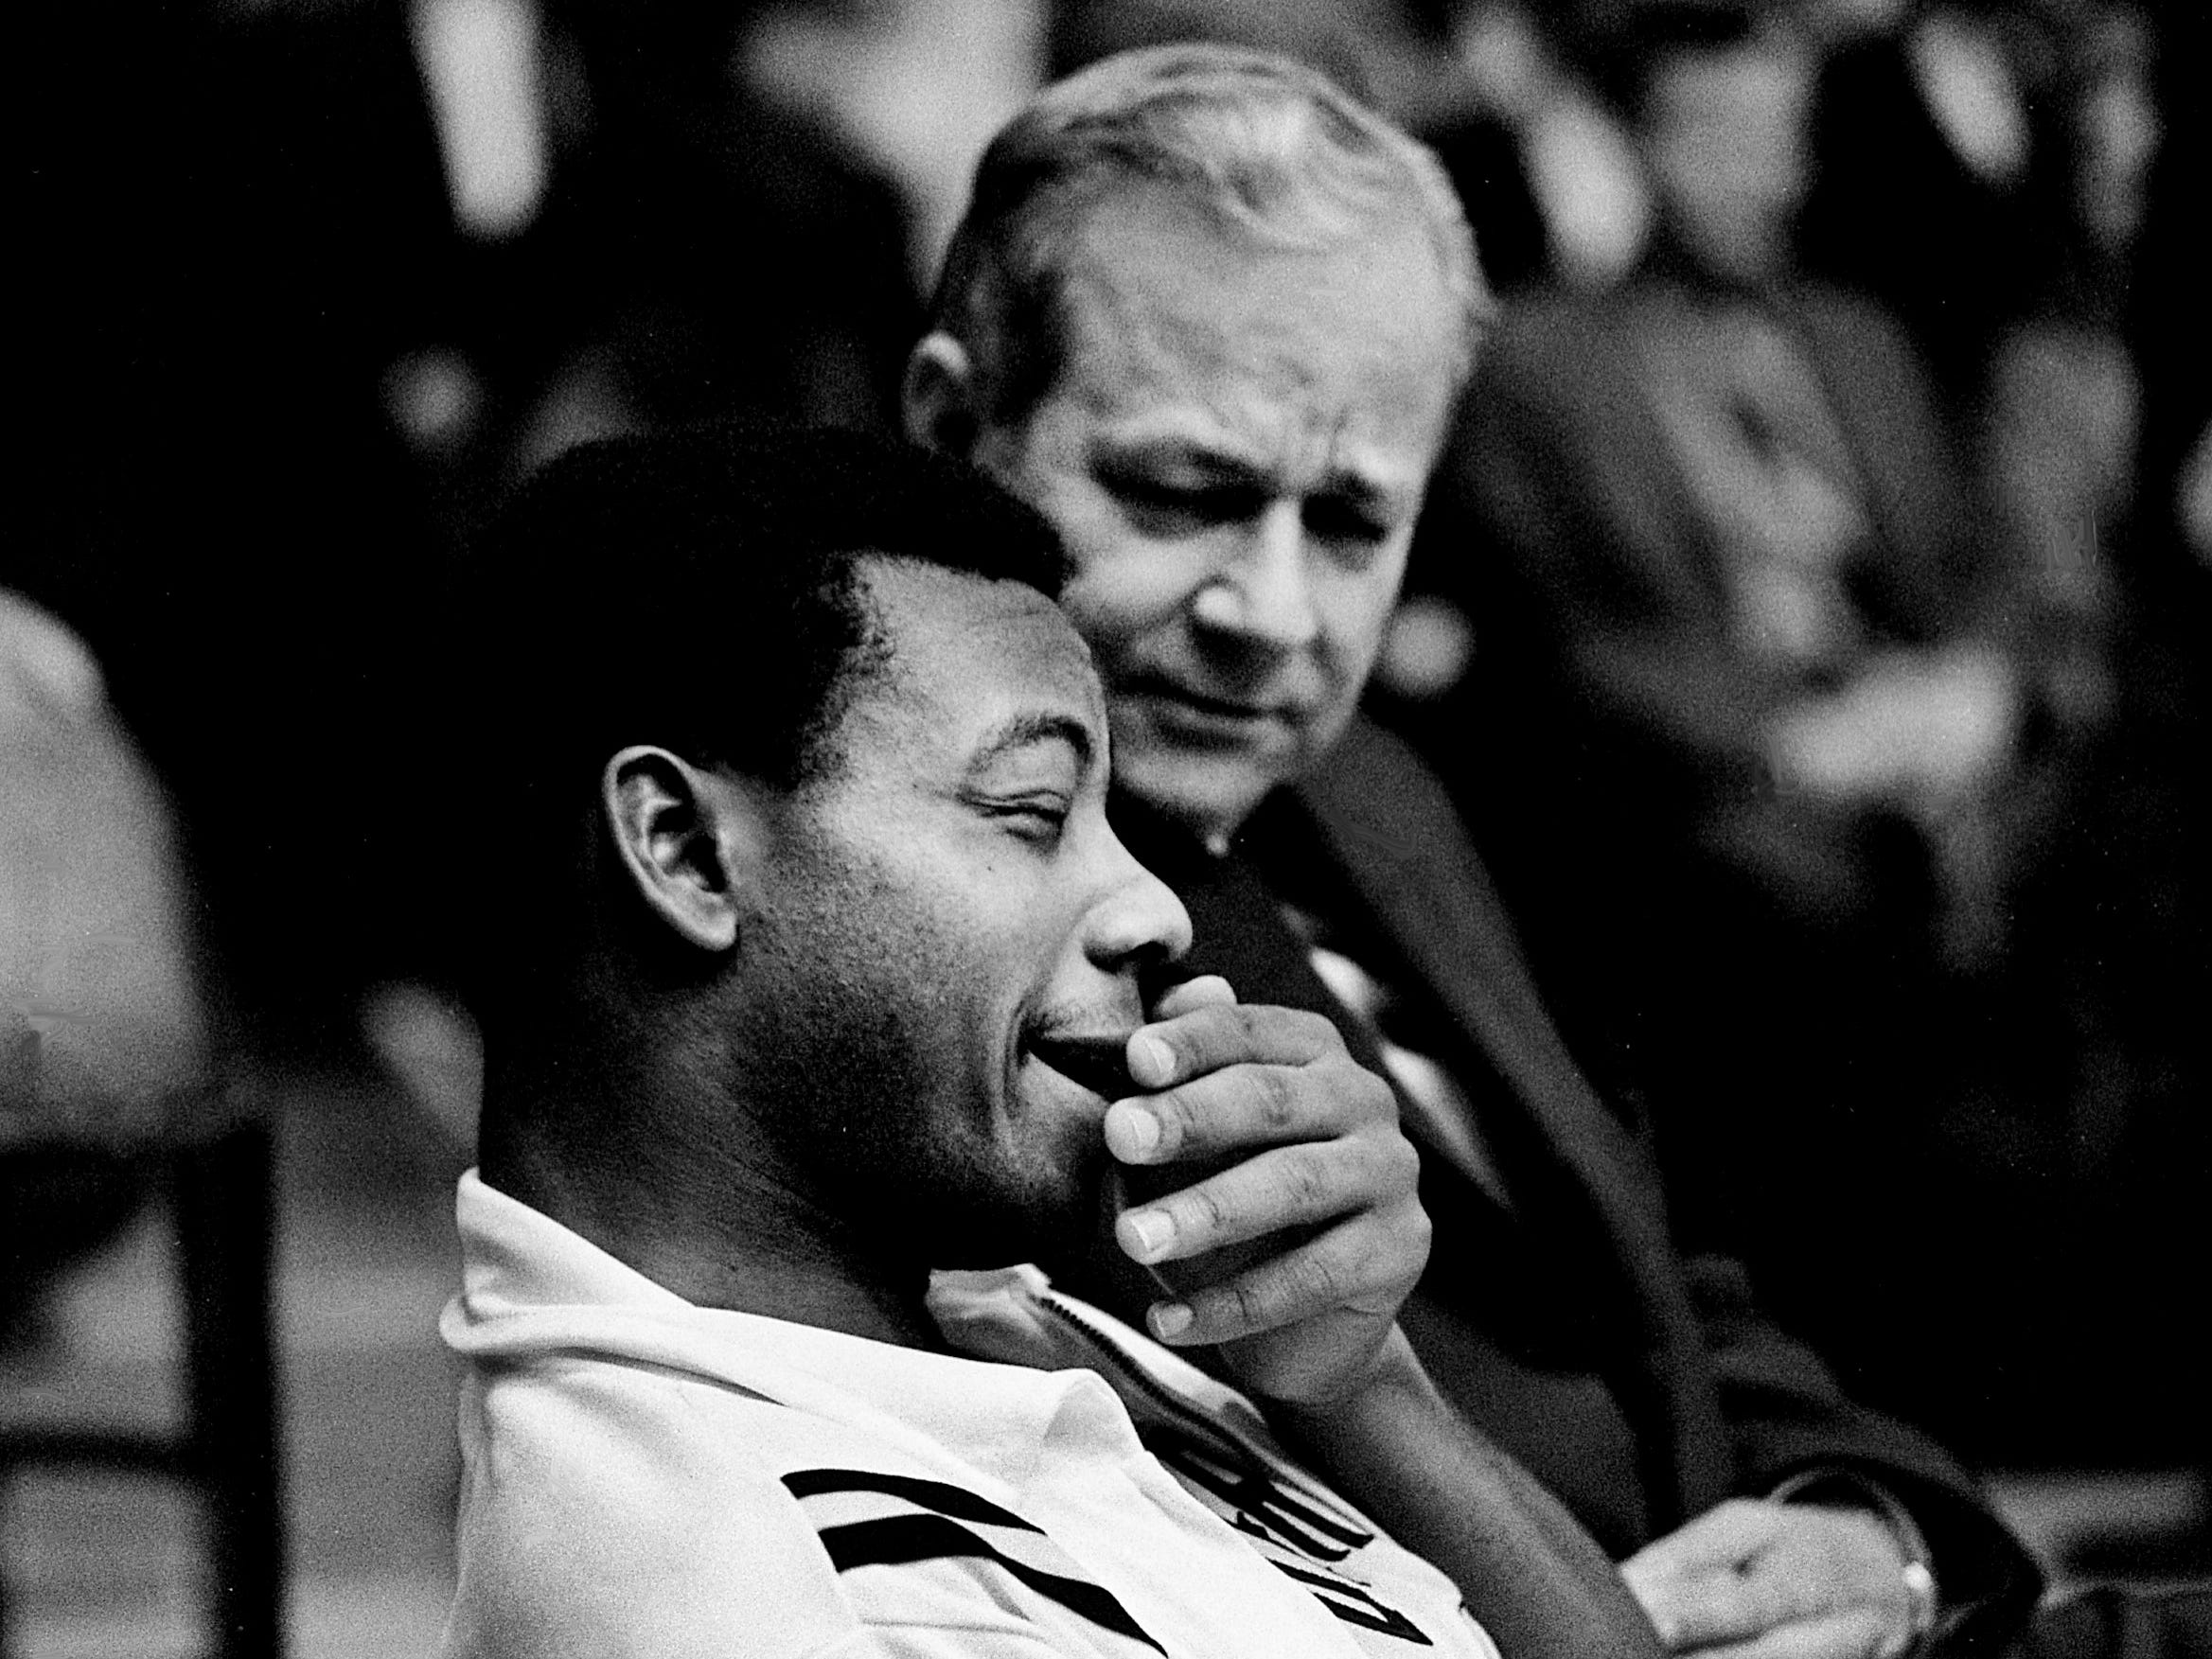 Vanderbilt junior forward Perry Wallace, left, gets a visit from the school's senior vice chancellor, Rob Roy Purdy, during the halftime of the Commodores' 92-67 victory over Bowling Green State at Memorial Gym on Dec. 16, 1968. Perry, sustained a bruised eye after nine minutes of play and missed the rest of the game.